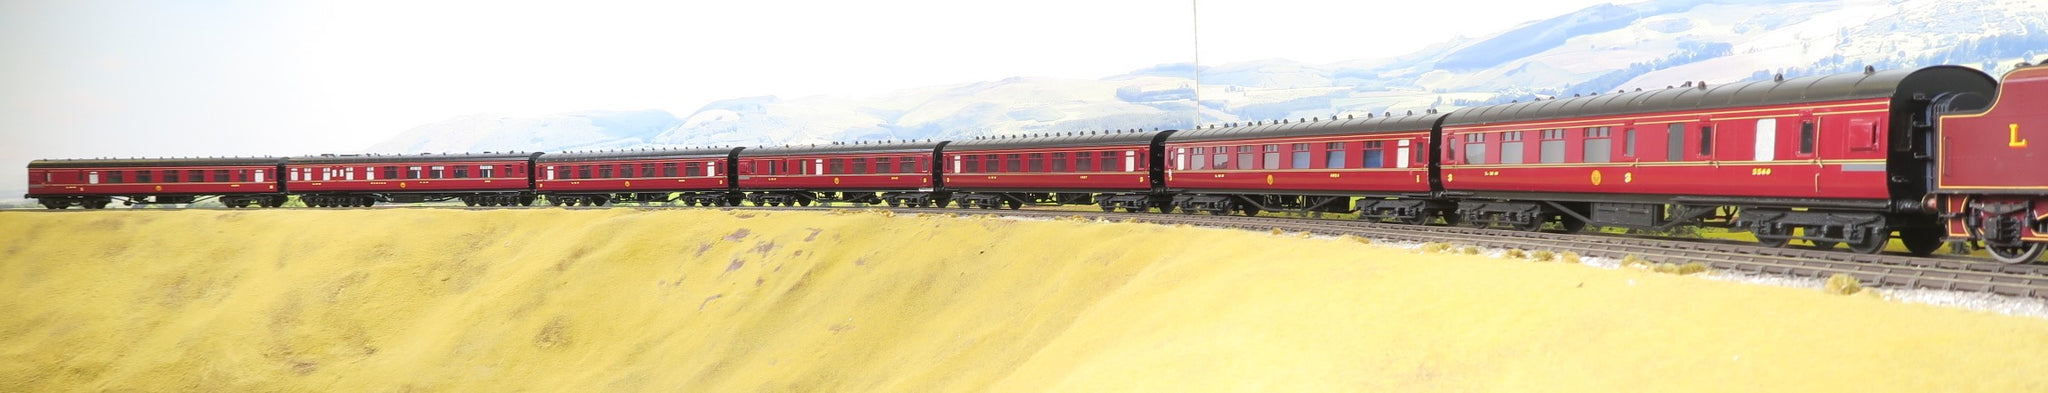 7mm Finescale O Gauge Kit Built Rake of 7 LMS Lined Maroon Passenger Coaches